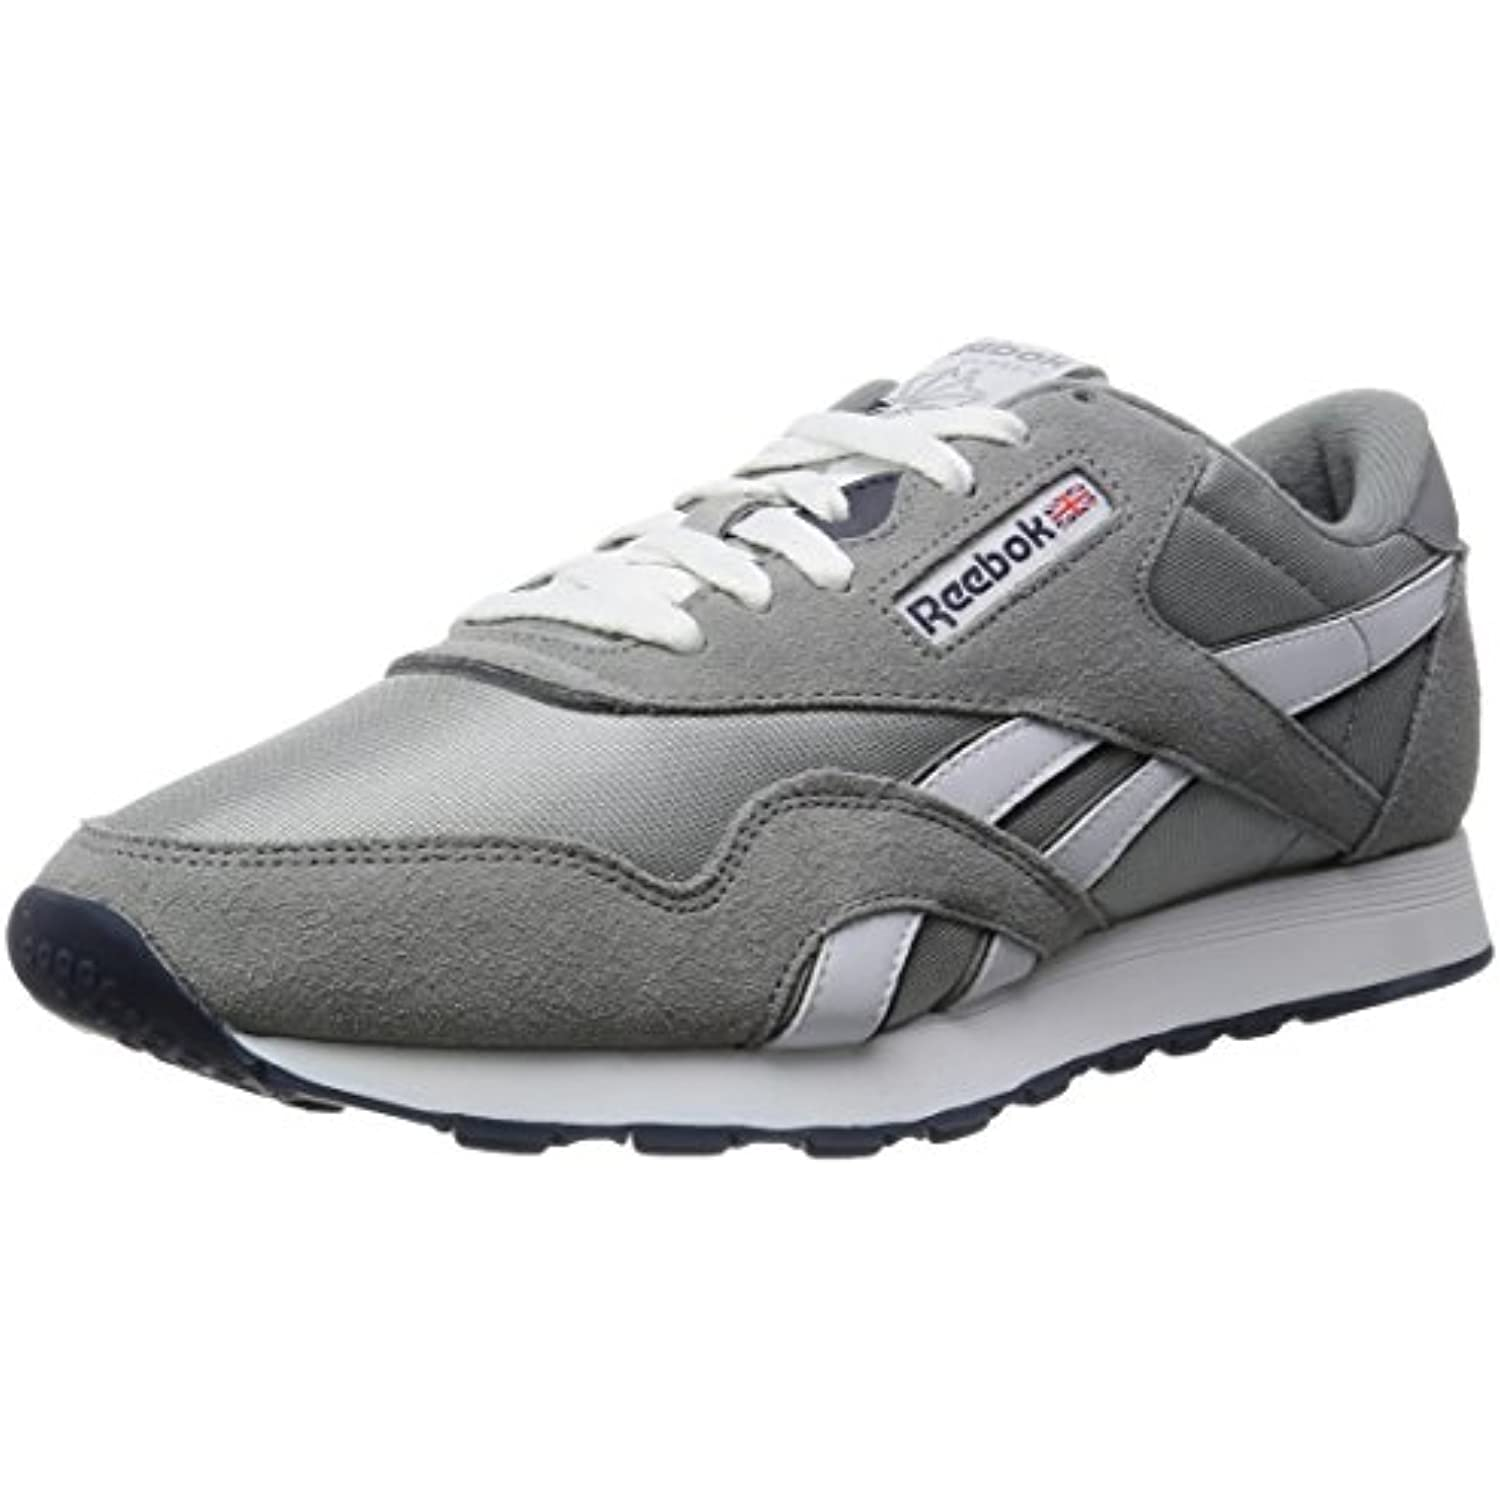 Reebok Cl Nylon, Baskets Mixte Adulte - B000AOZIJY - - - 066103